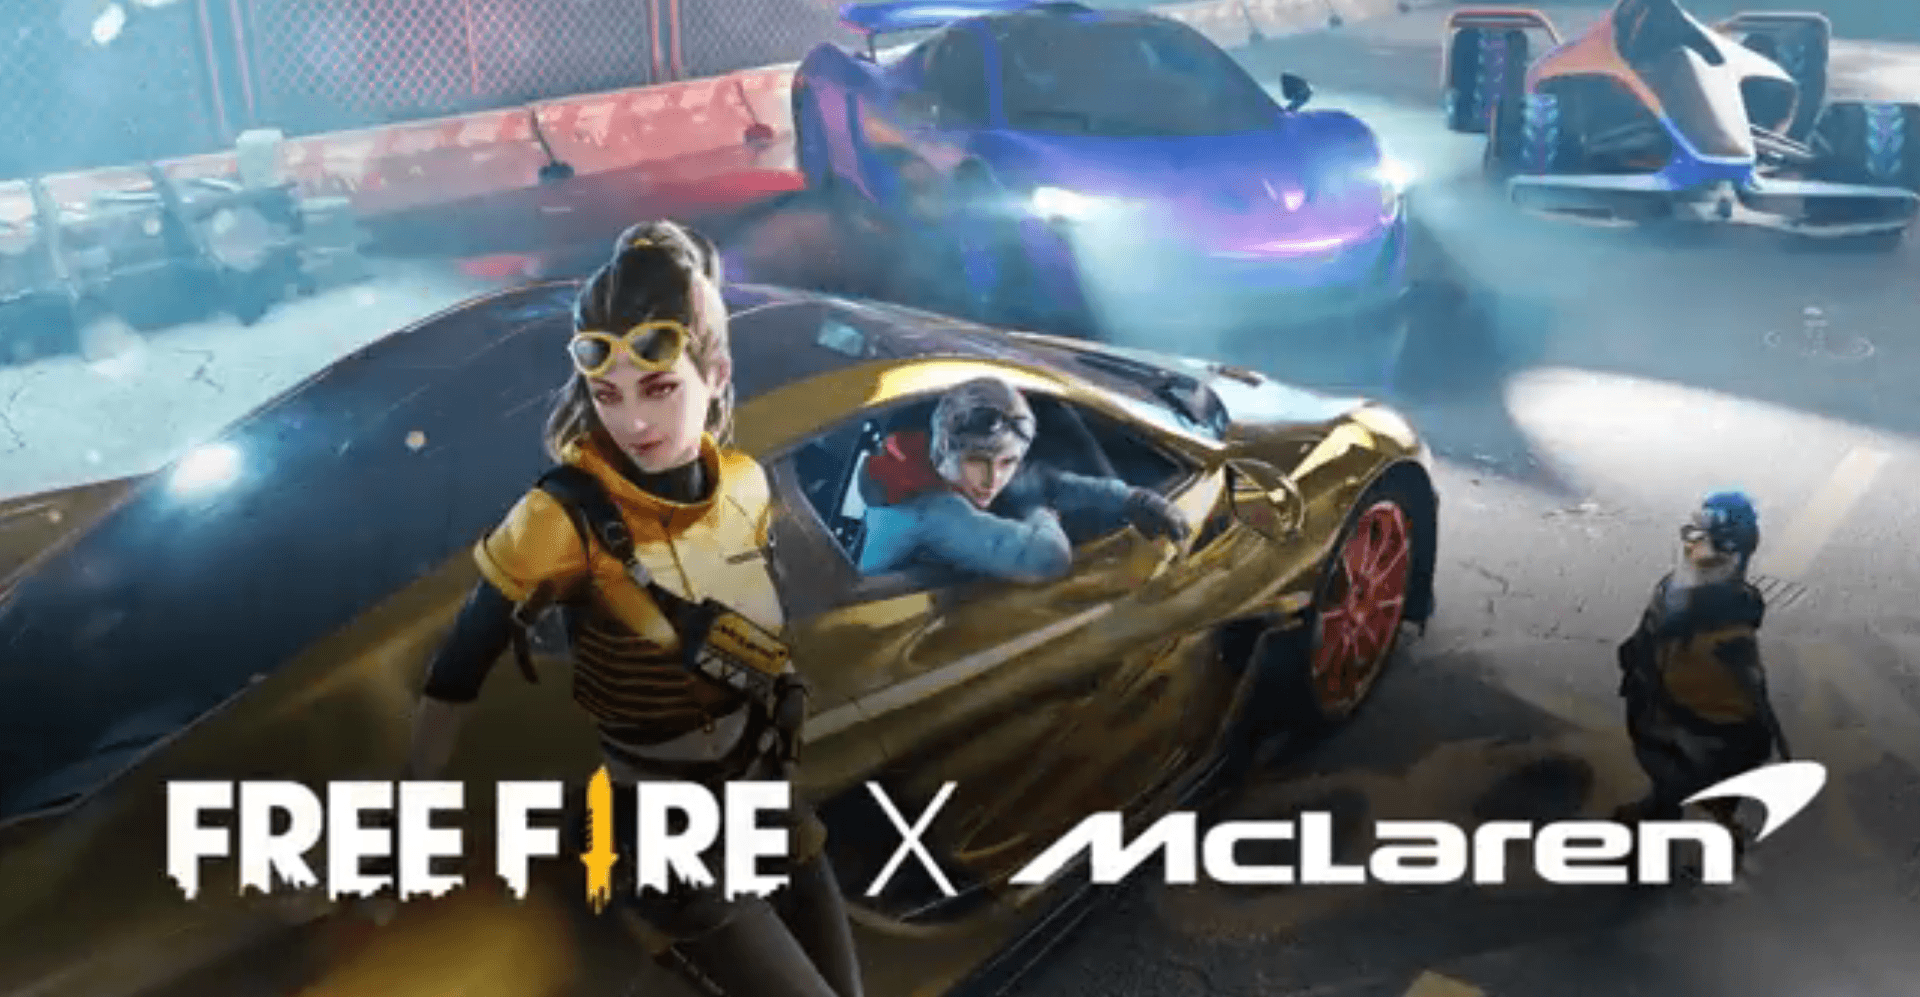 Free Fire Releases Futuristic MCLFF Skin as Part of McLaren Collaboration